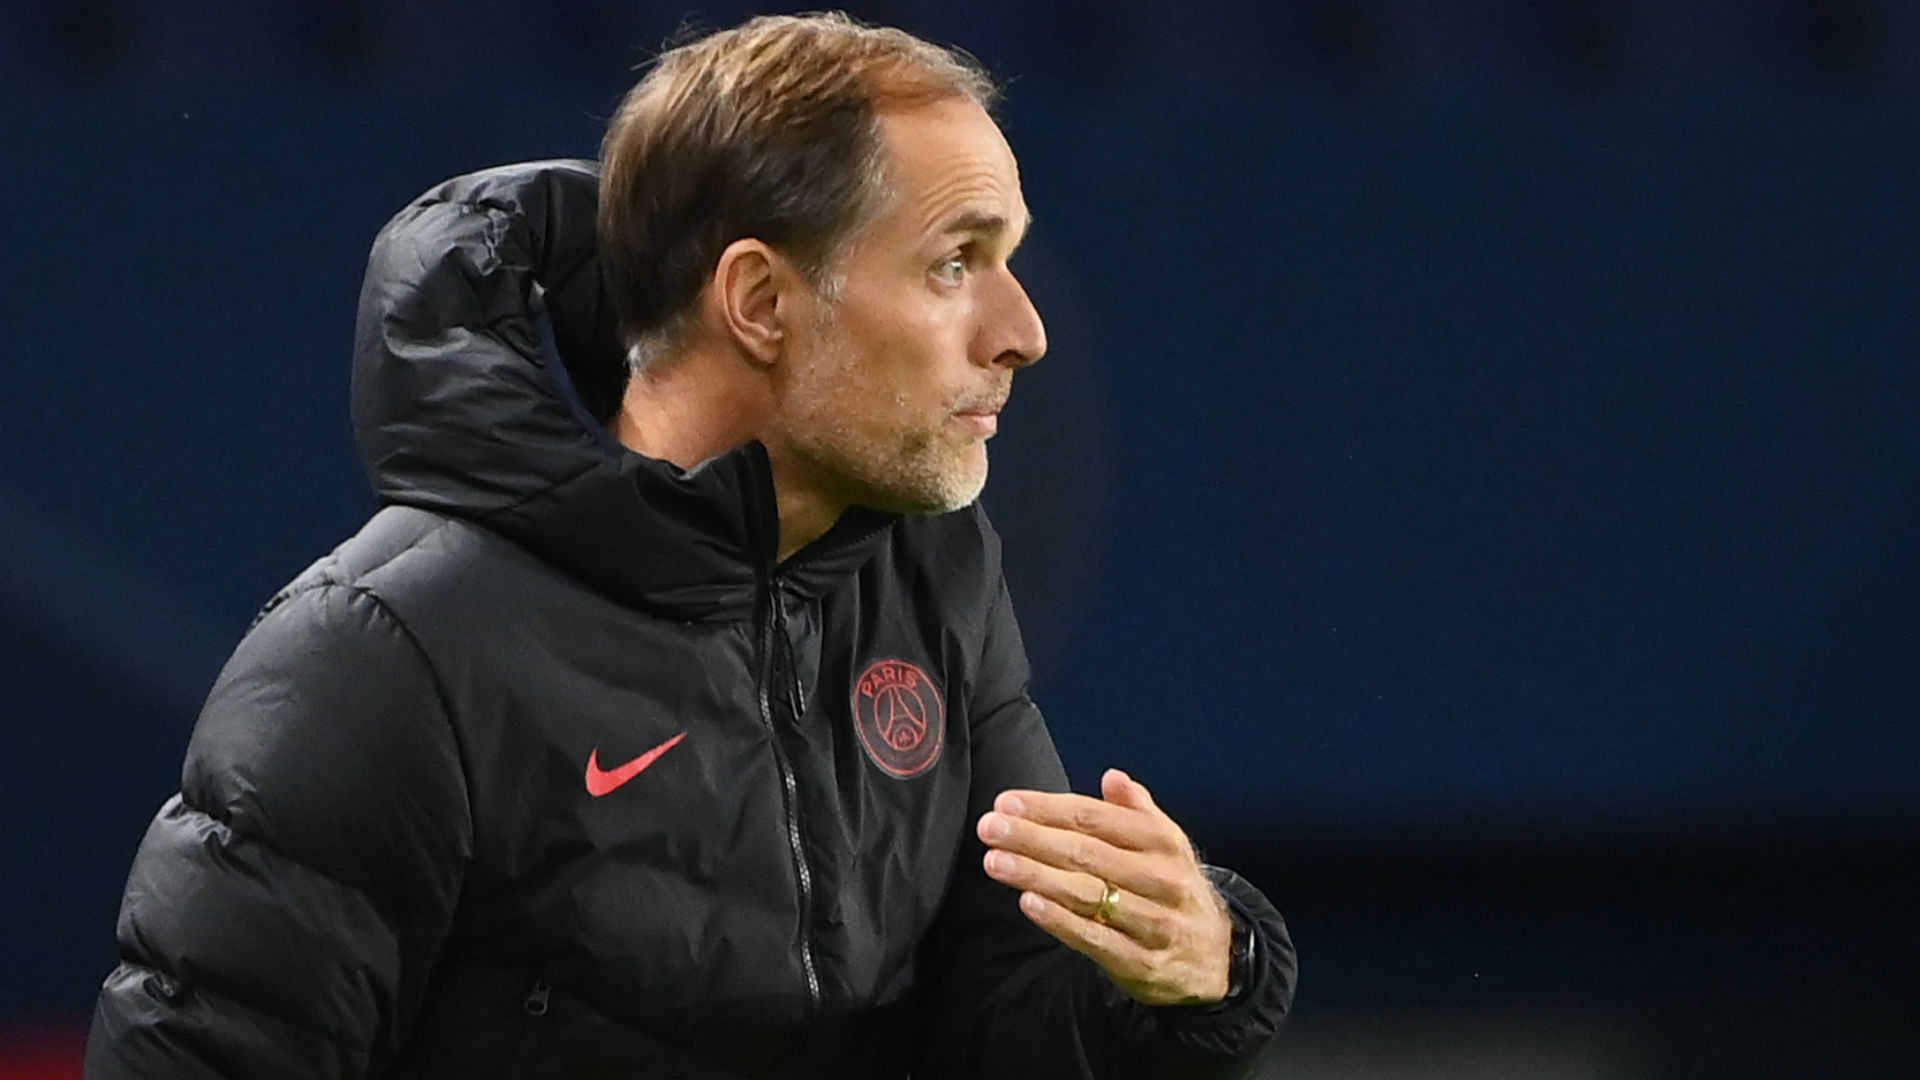 'Maybe we will only have 11 players' - Tuchel bemoans PSG injury crisis ahead of facing Man Utd in Champions League